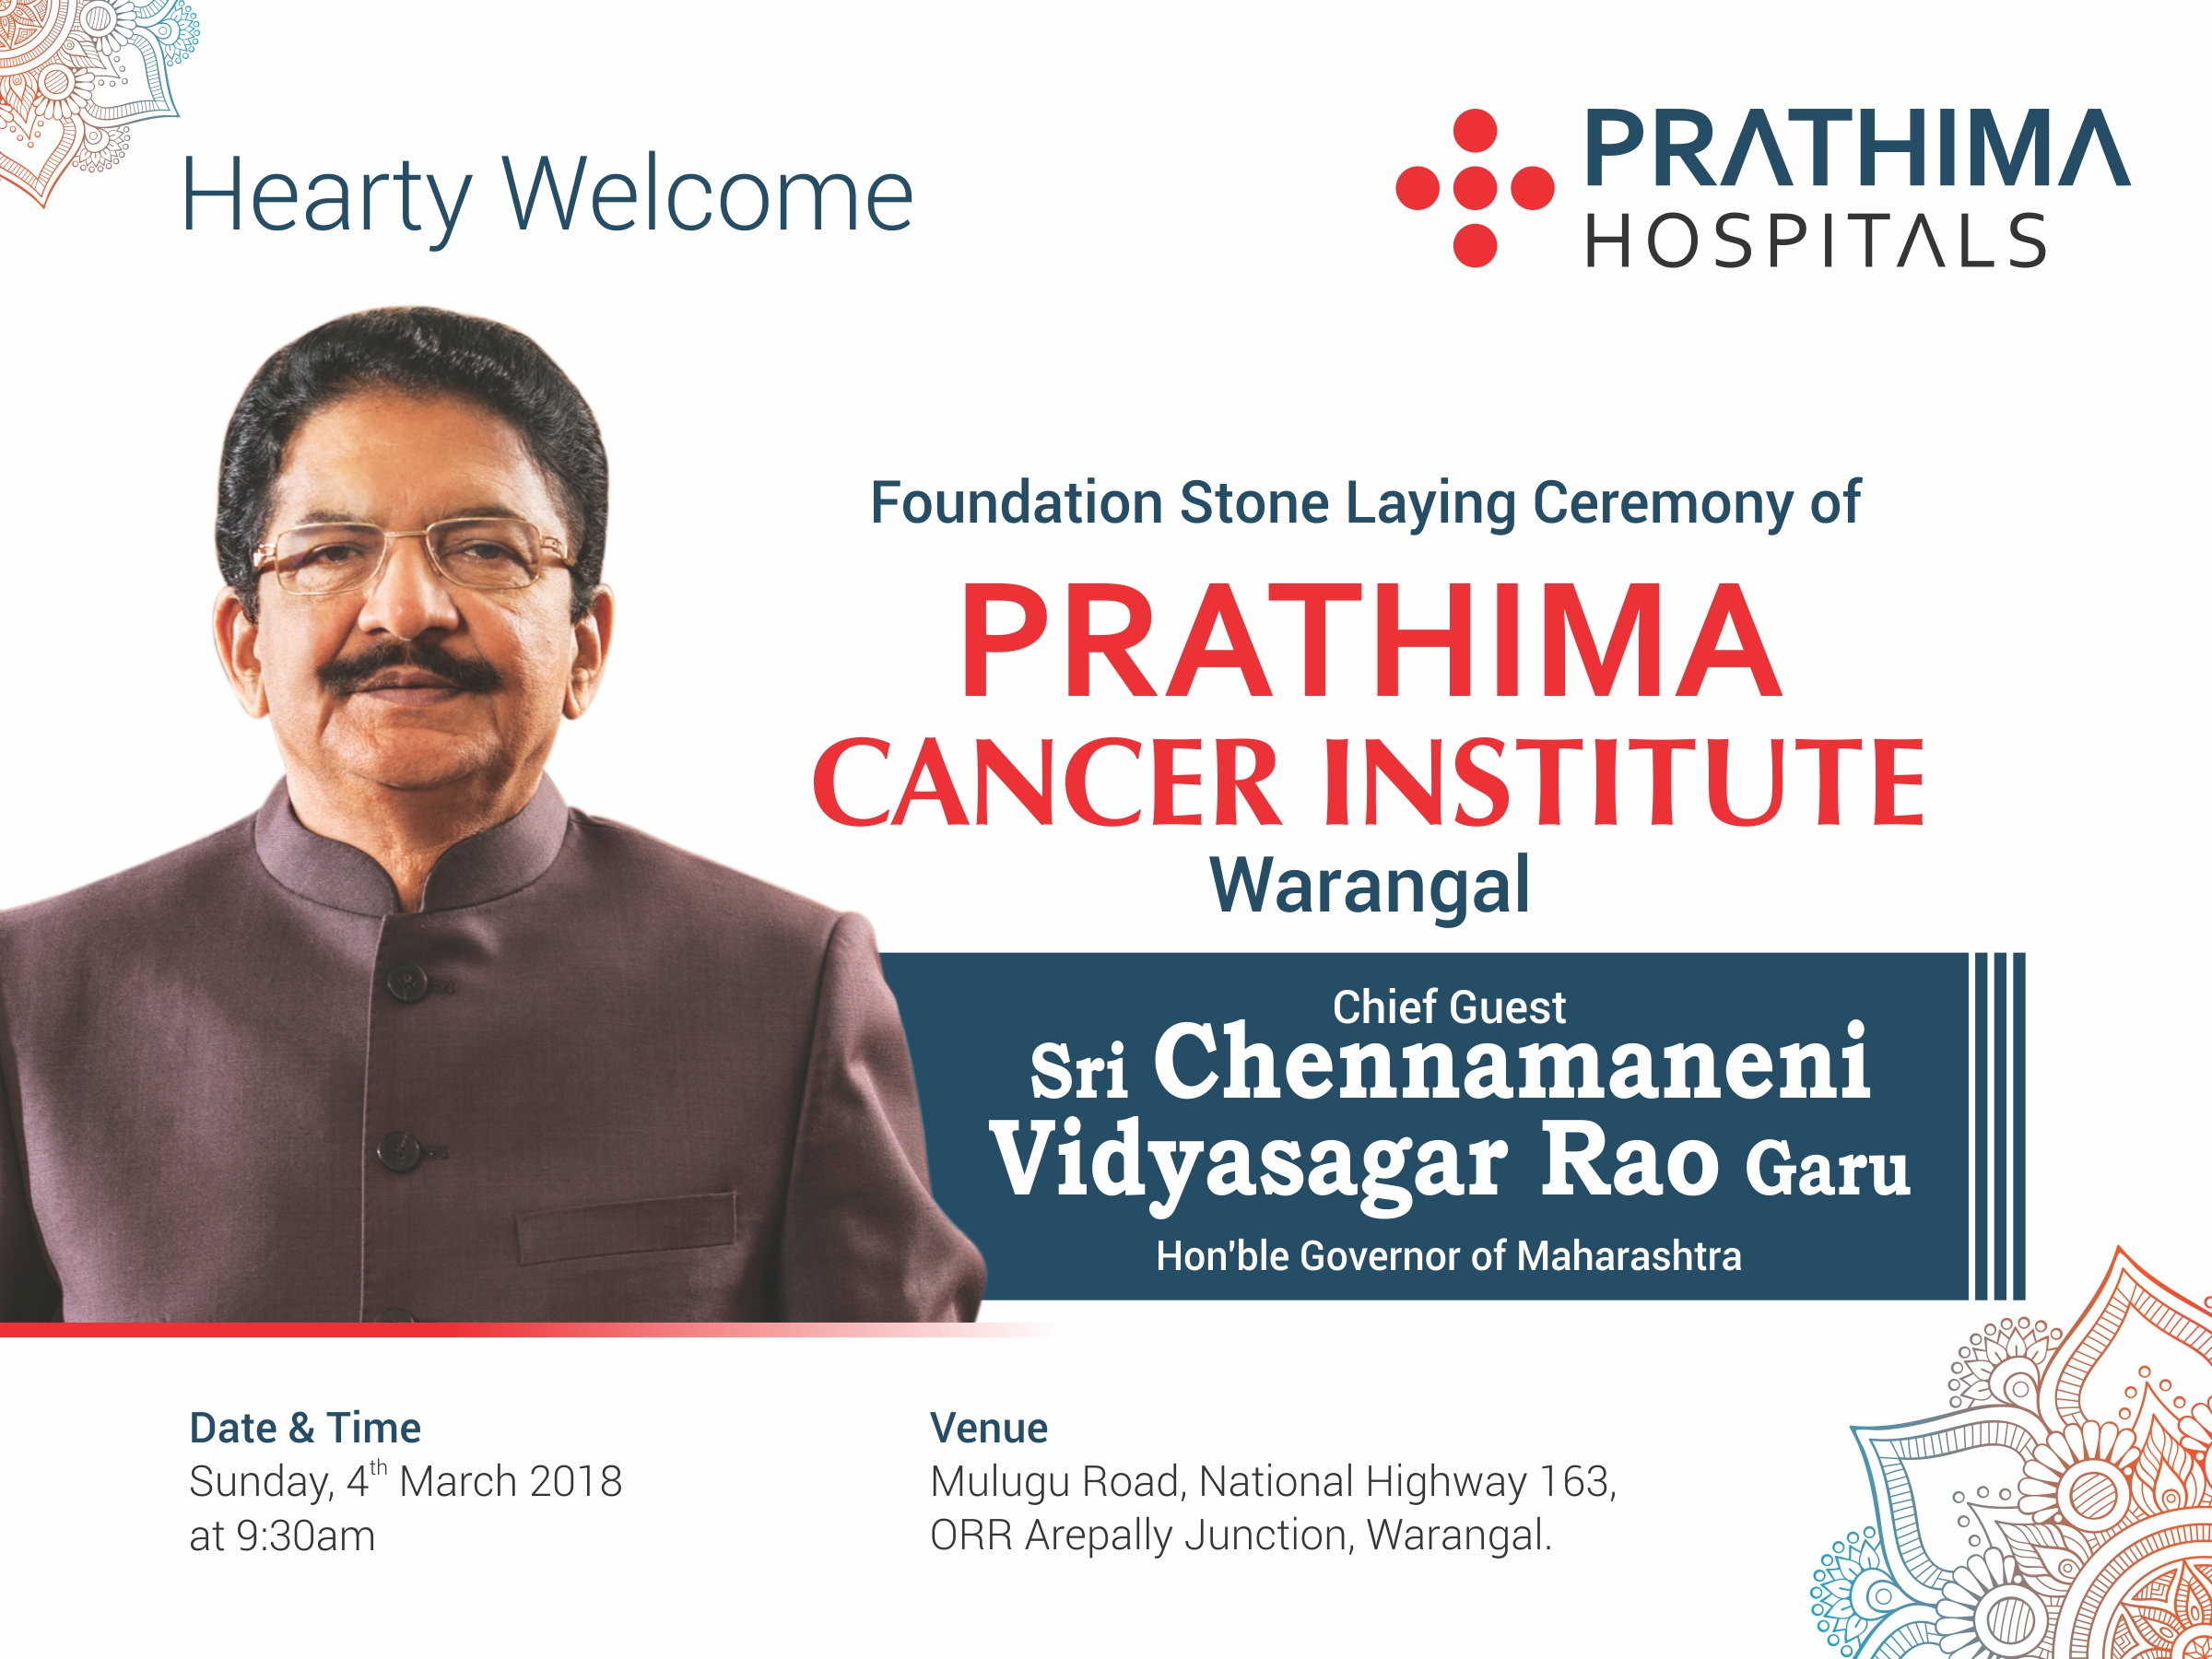 Prathima Cancer Institute Foundation Laying Ceremony Press Release